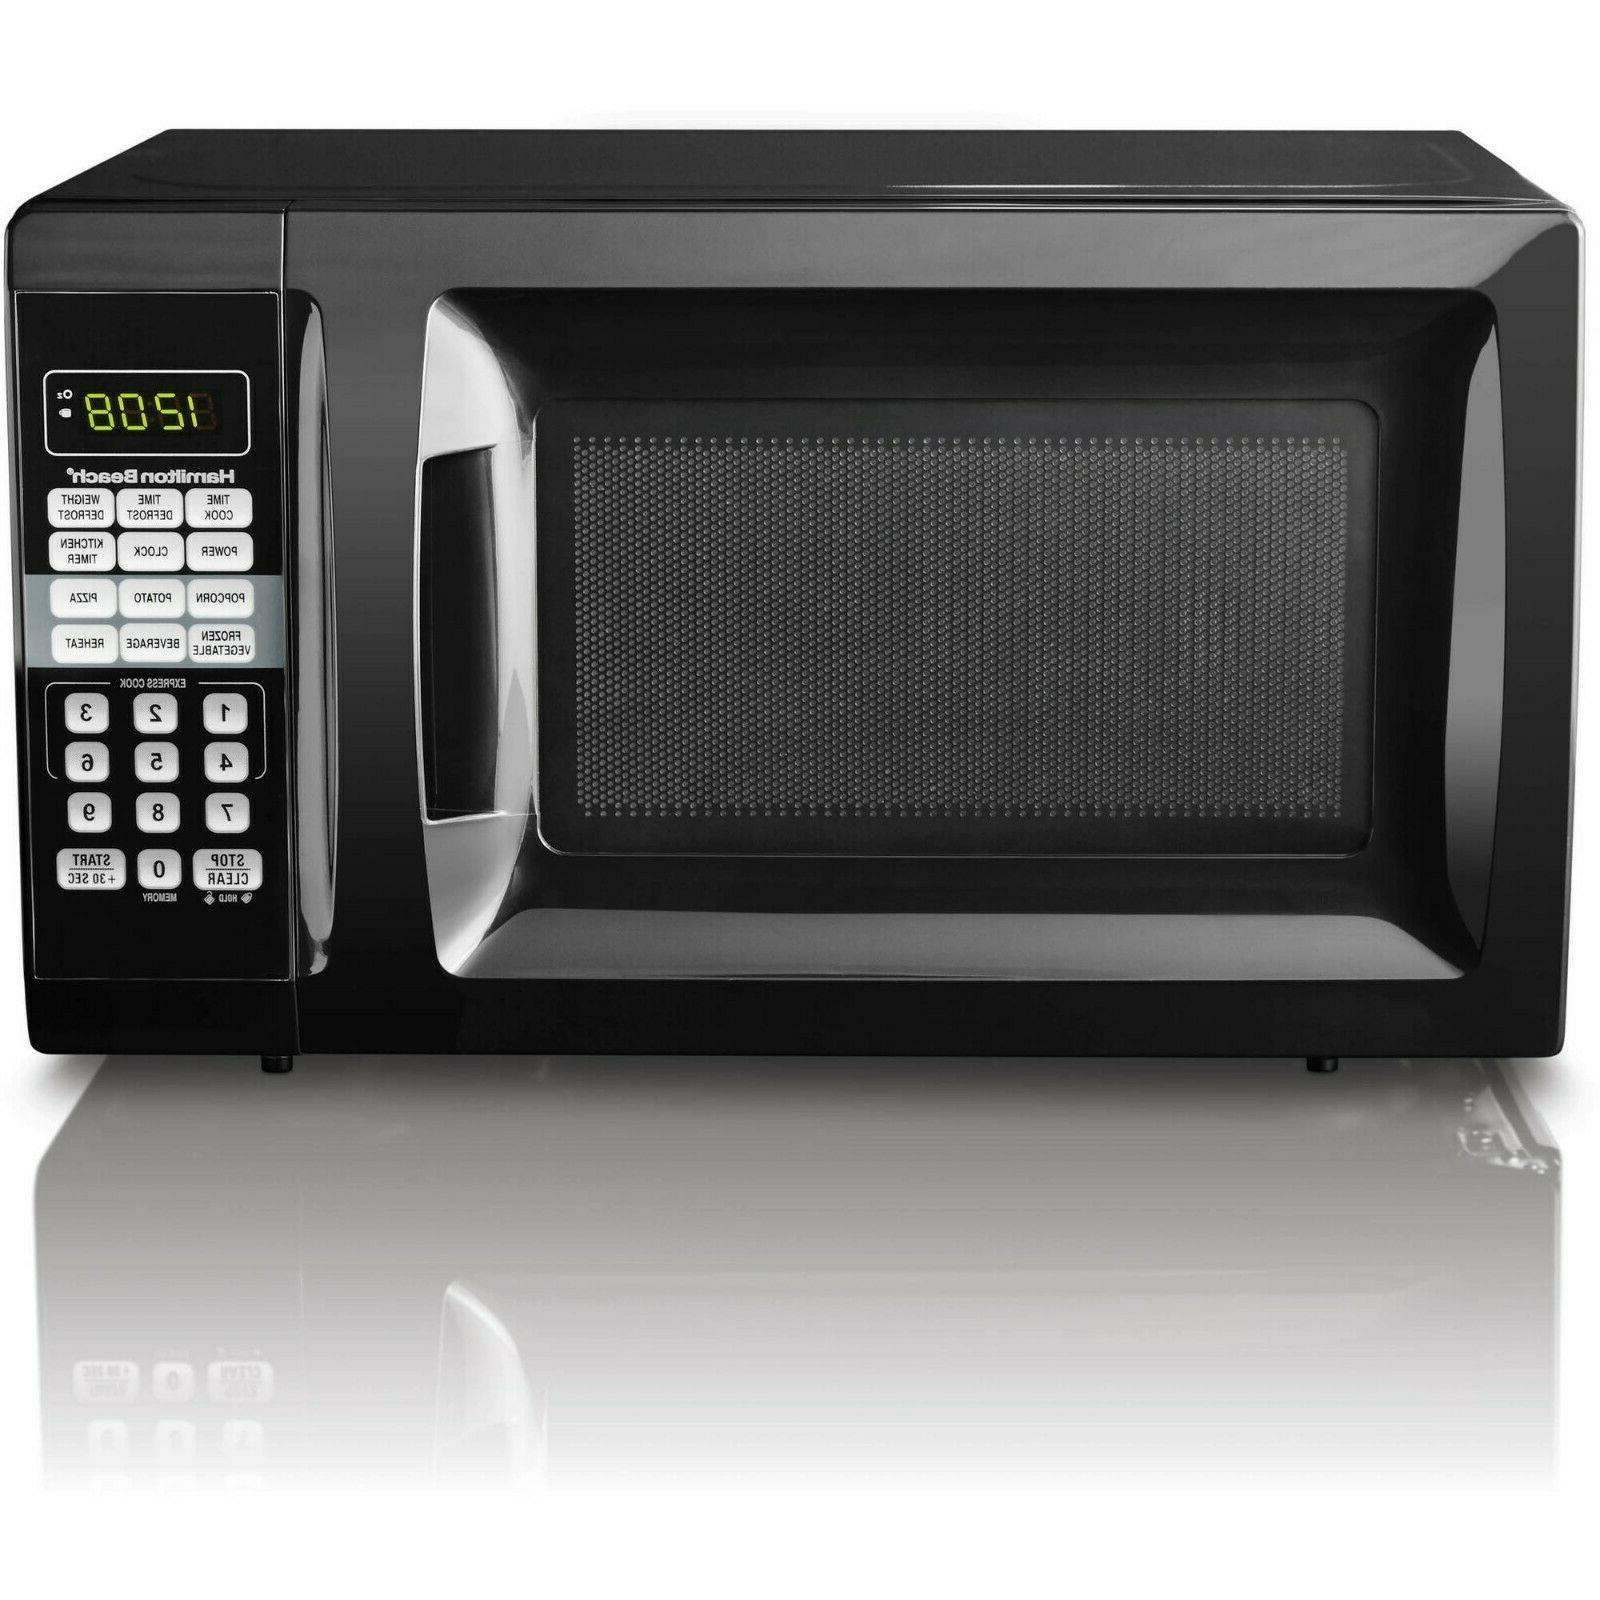 0 7 cu ft black microwave oven